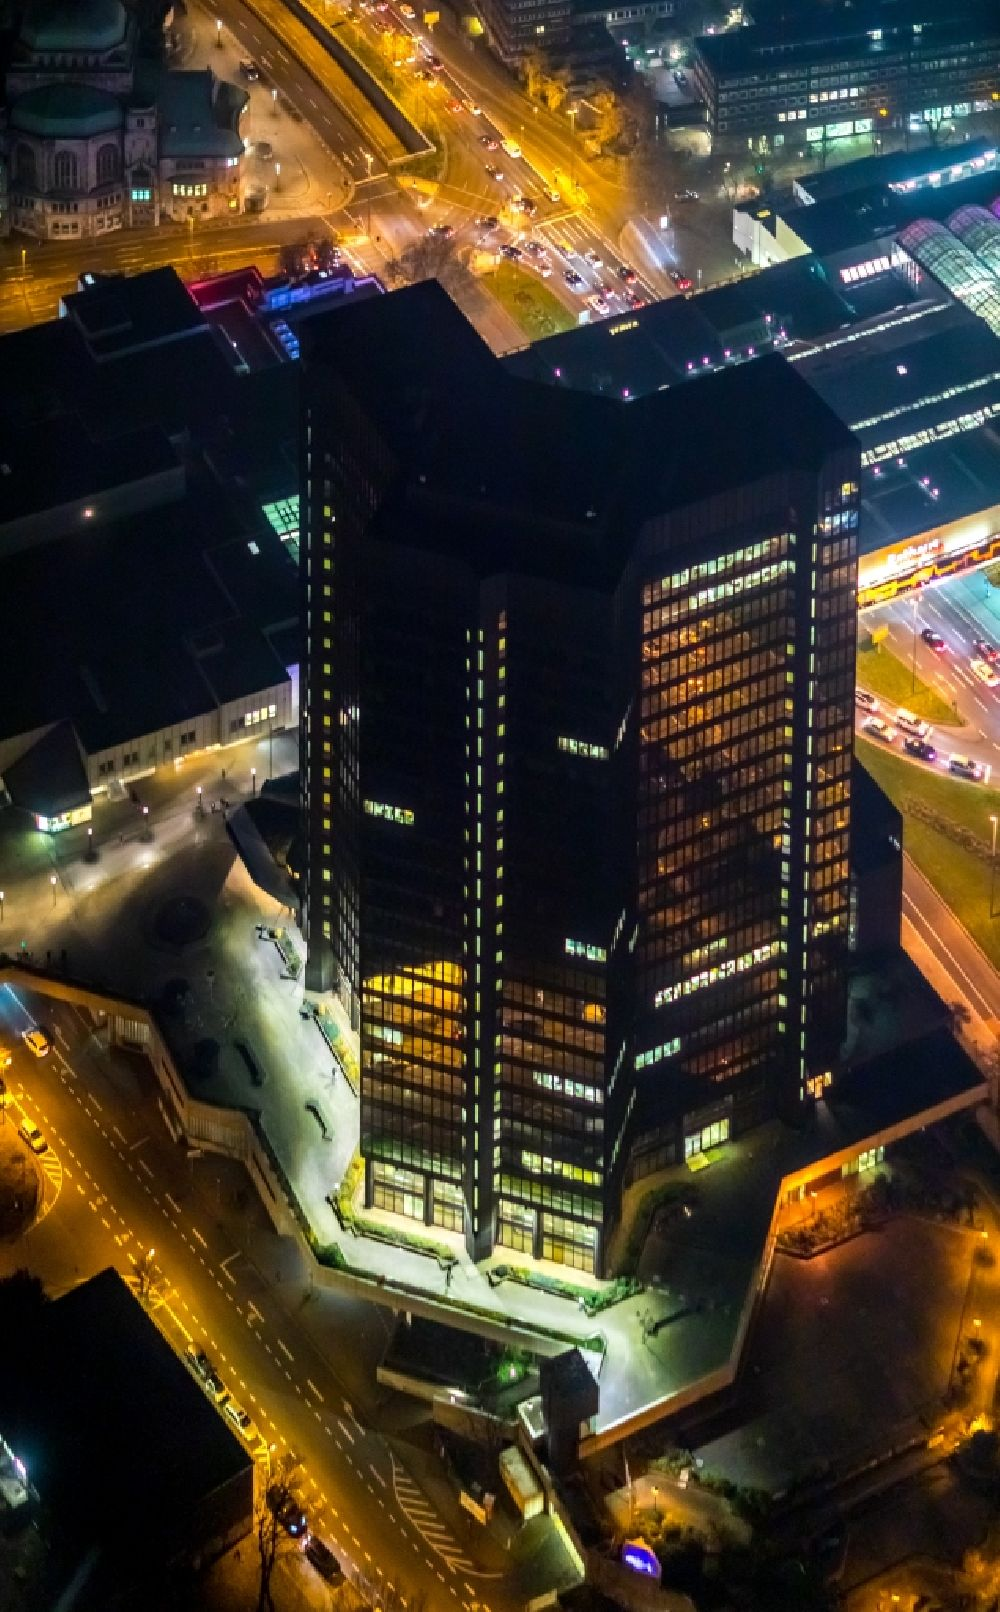 Aerial image at night Essen - Night lighting town Hall skyscraper building of the city administration on Porscheplatz in the district Ostviertel in Essen in the state North Rhine-Westphalia, Germany. Further information at: Stadt Essen, Stadtwerke Essen AG.